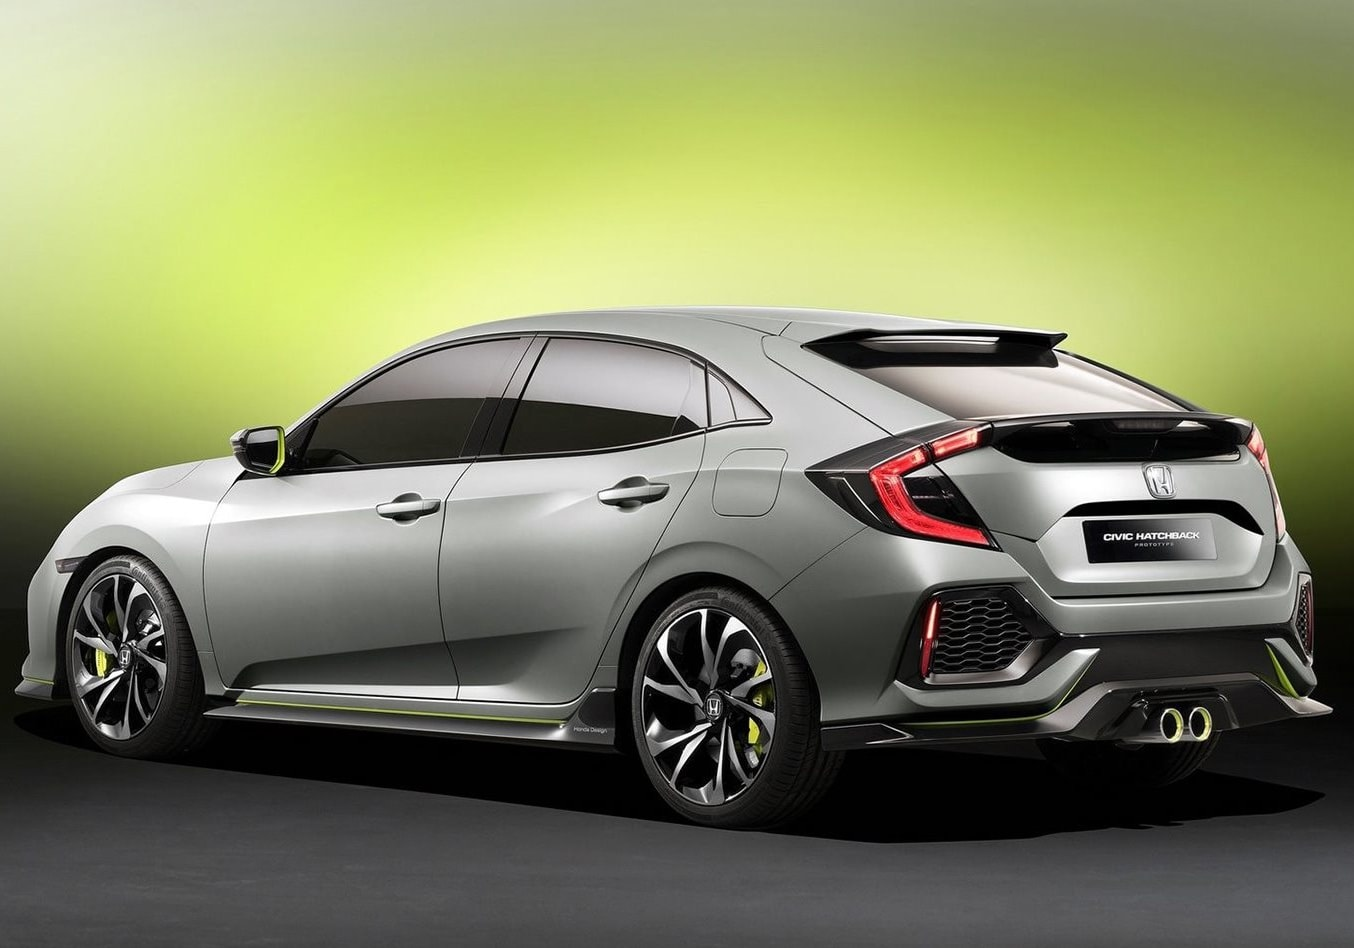 Honda Civic Type R arriving 2017 from sub-$50K